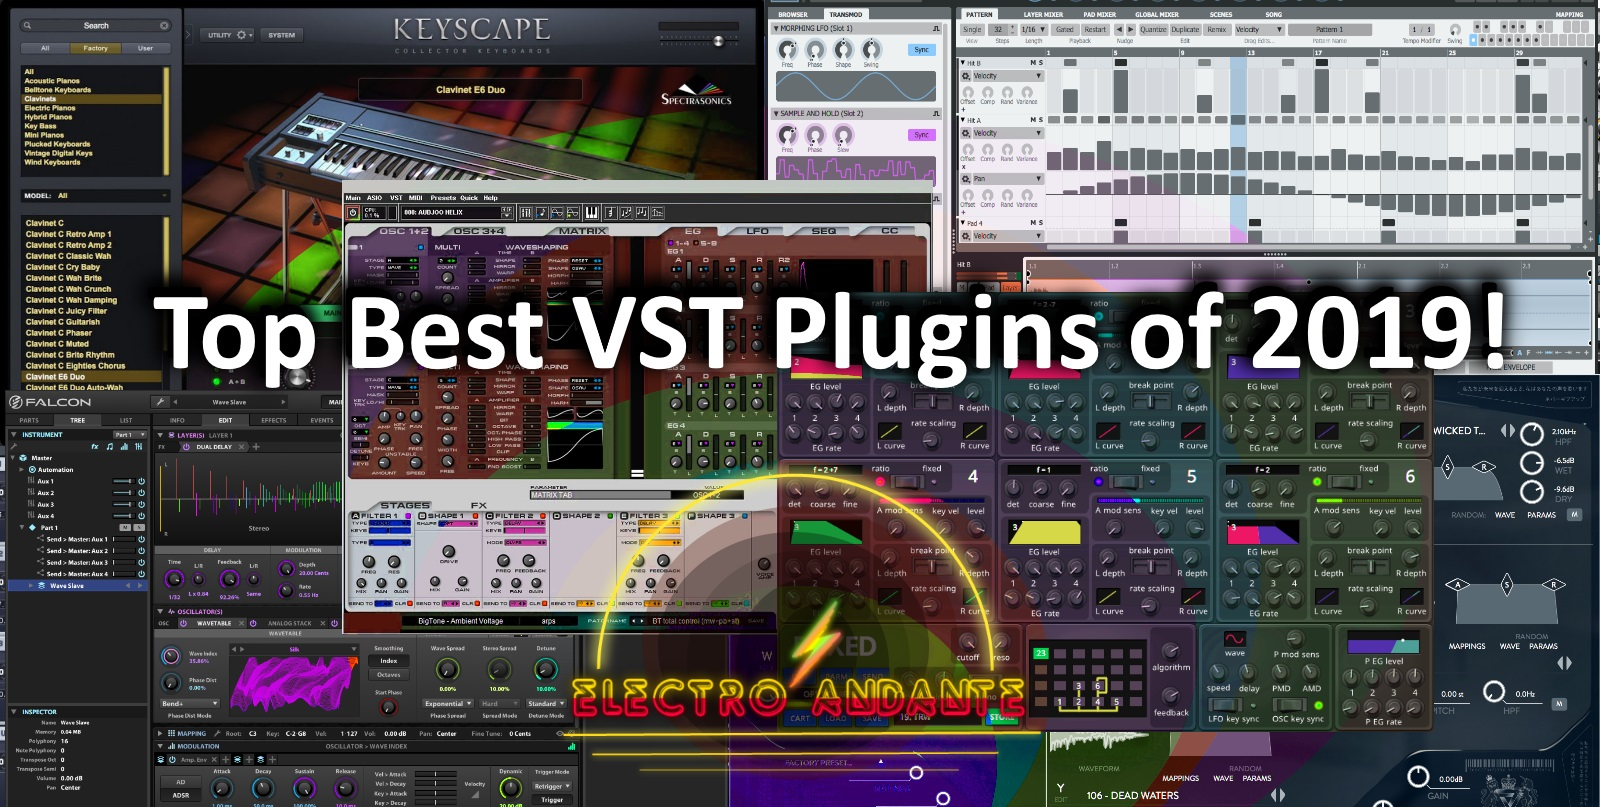 Top Best VST Plugins of 2019!